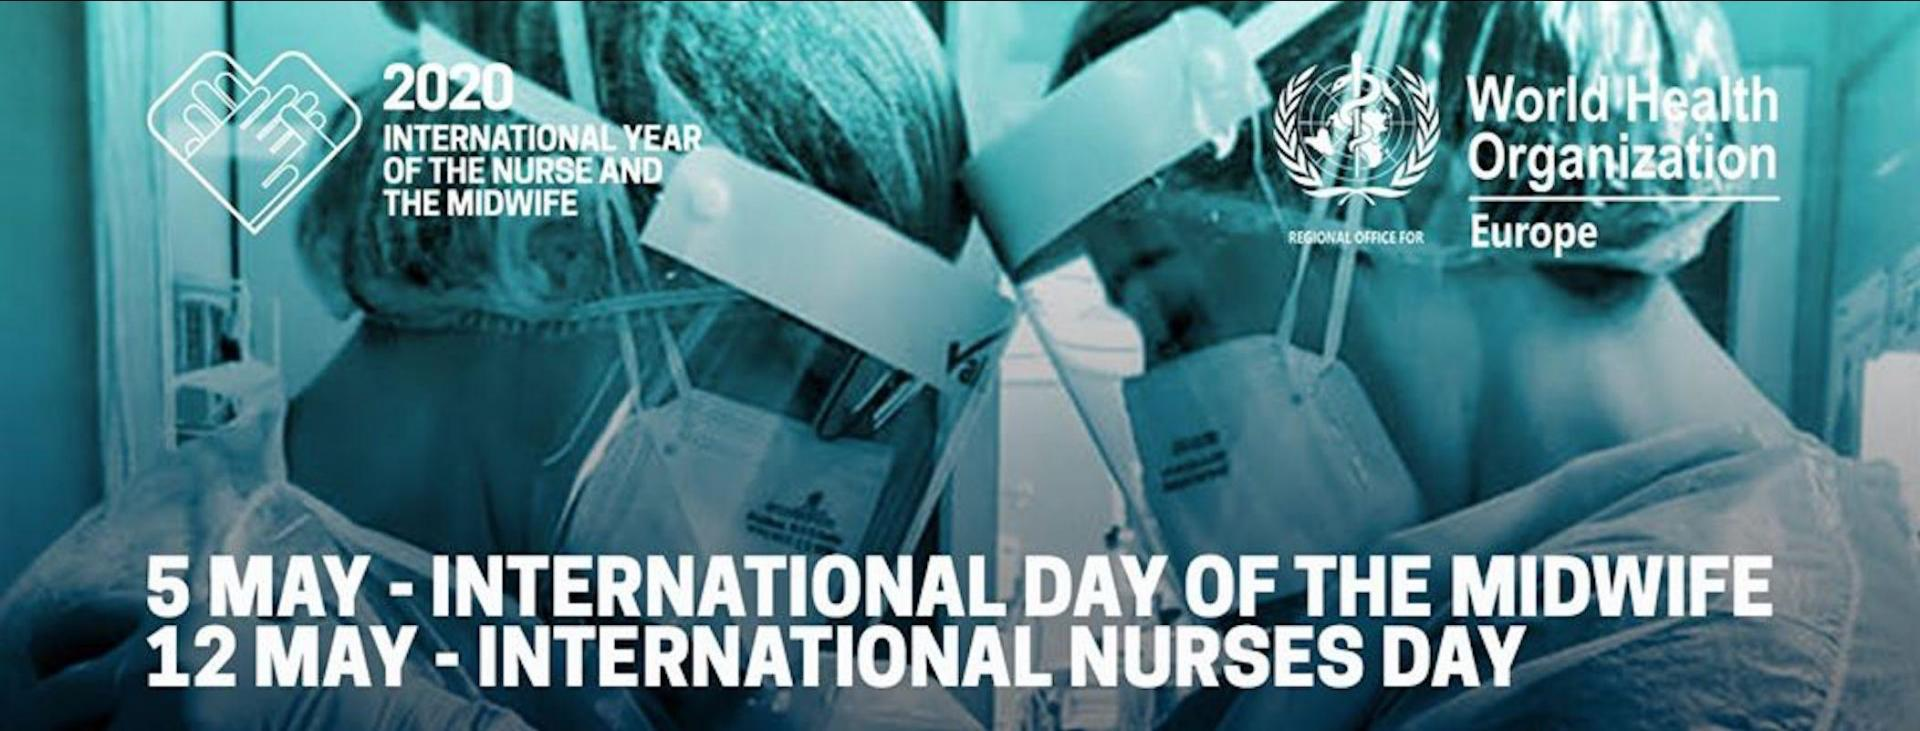 WHO will be using the viral photo to celebrate midwives and nurses.